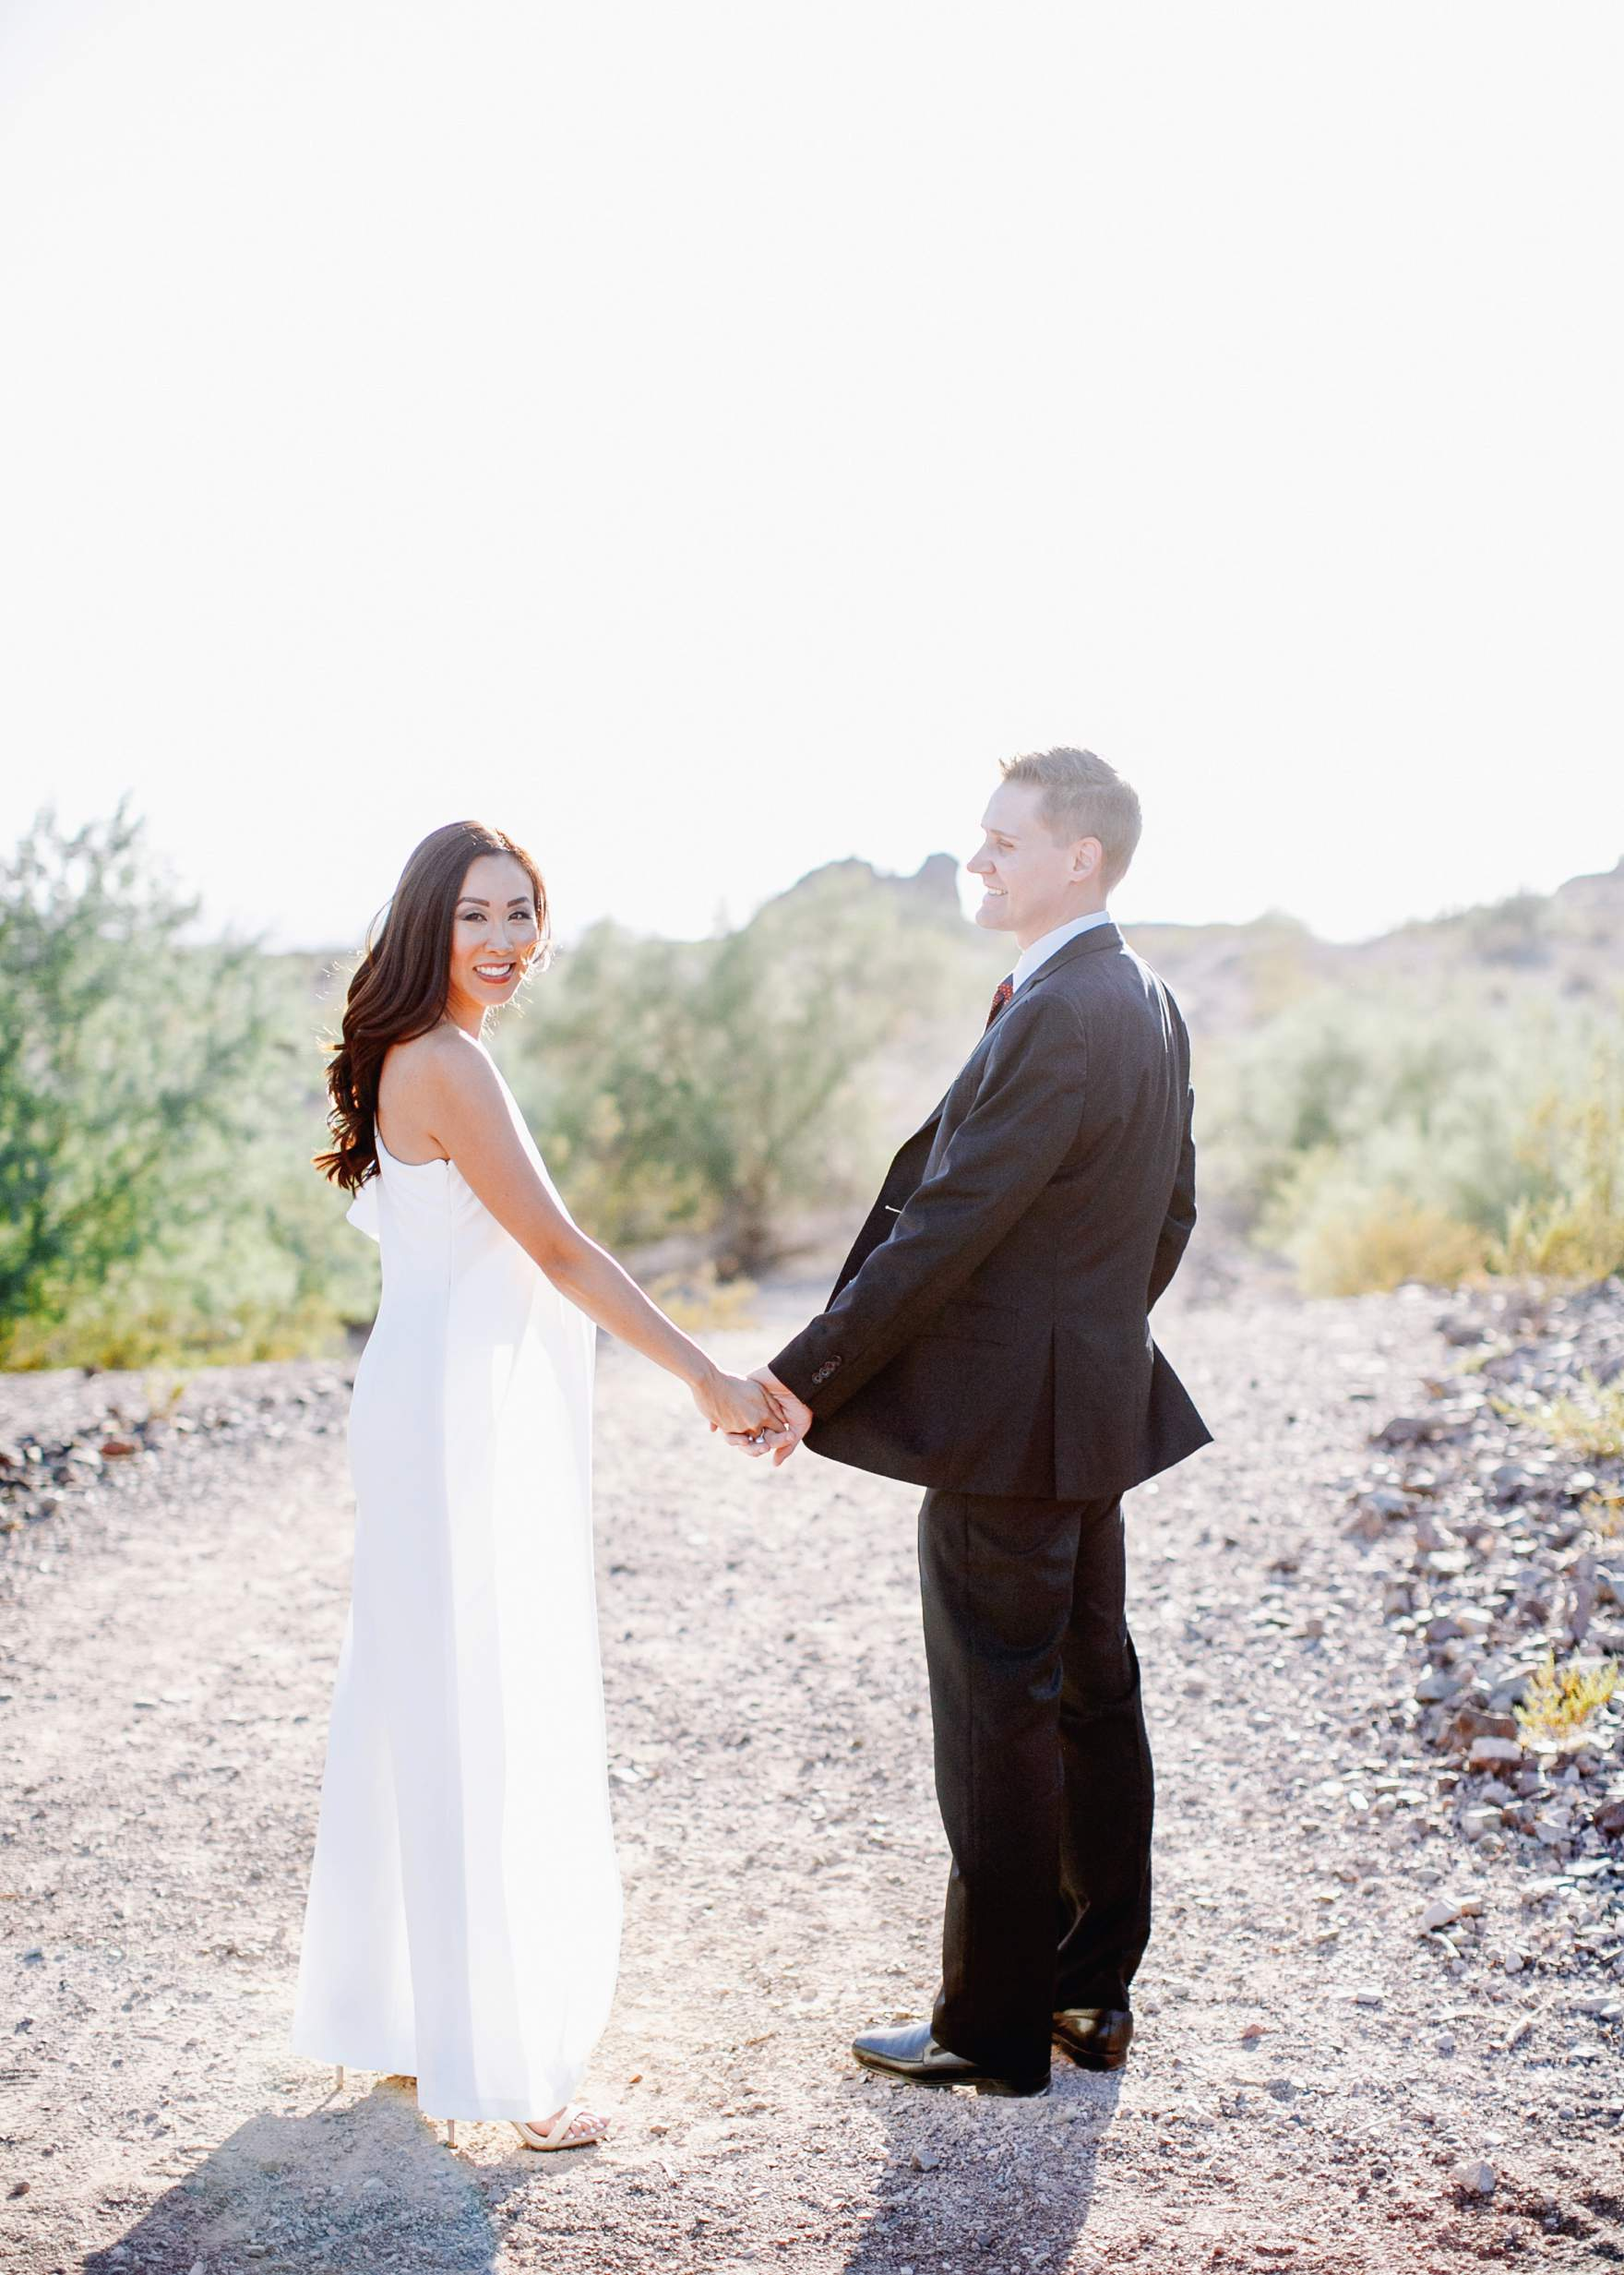 Diana Elizabeth blogger with husband Benjamin Christmas photos in the desert wearing white jumpsuit Arizona 2017